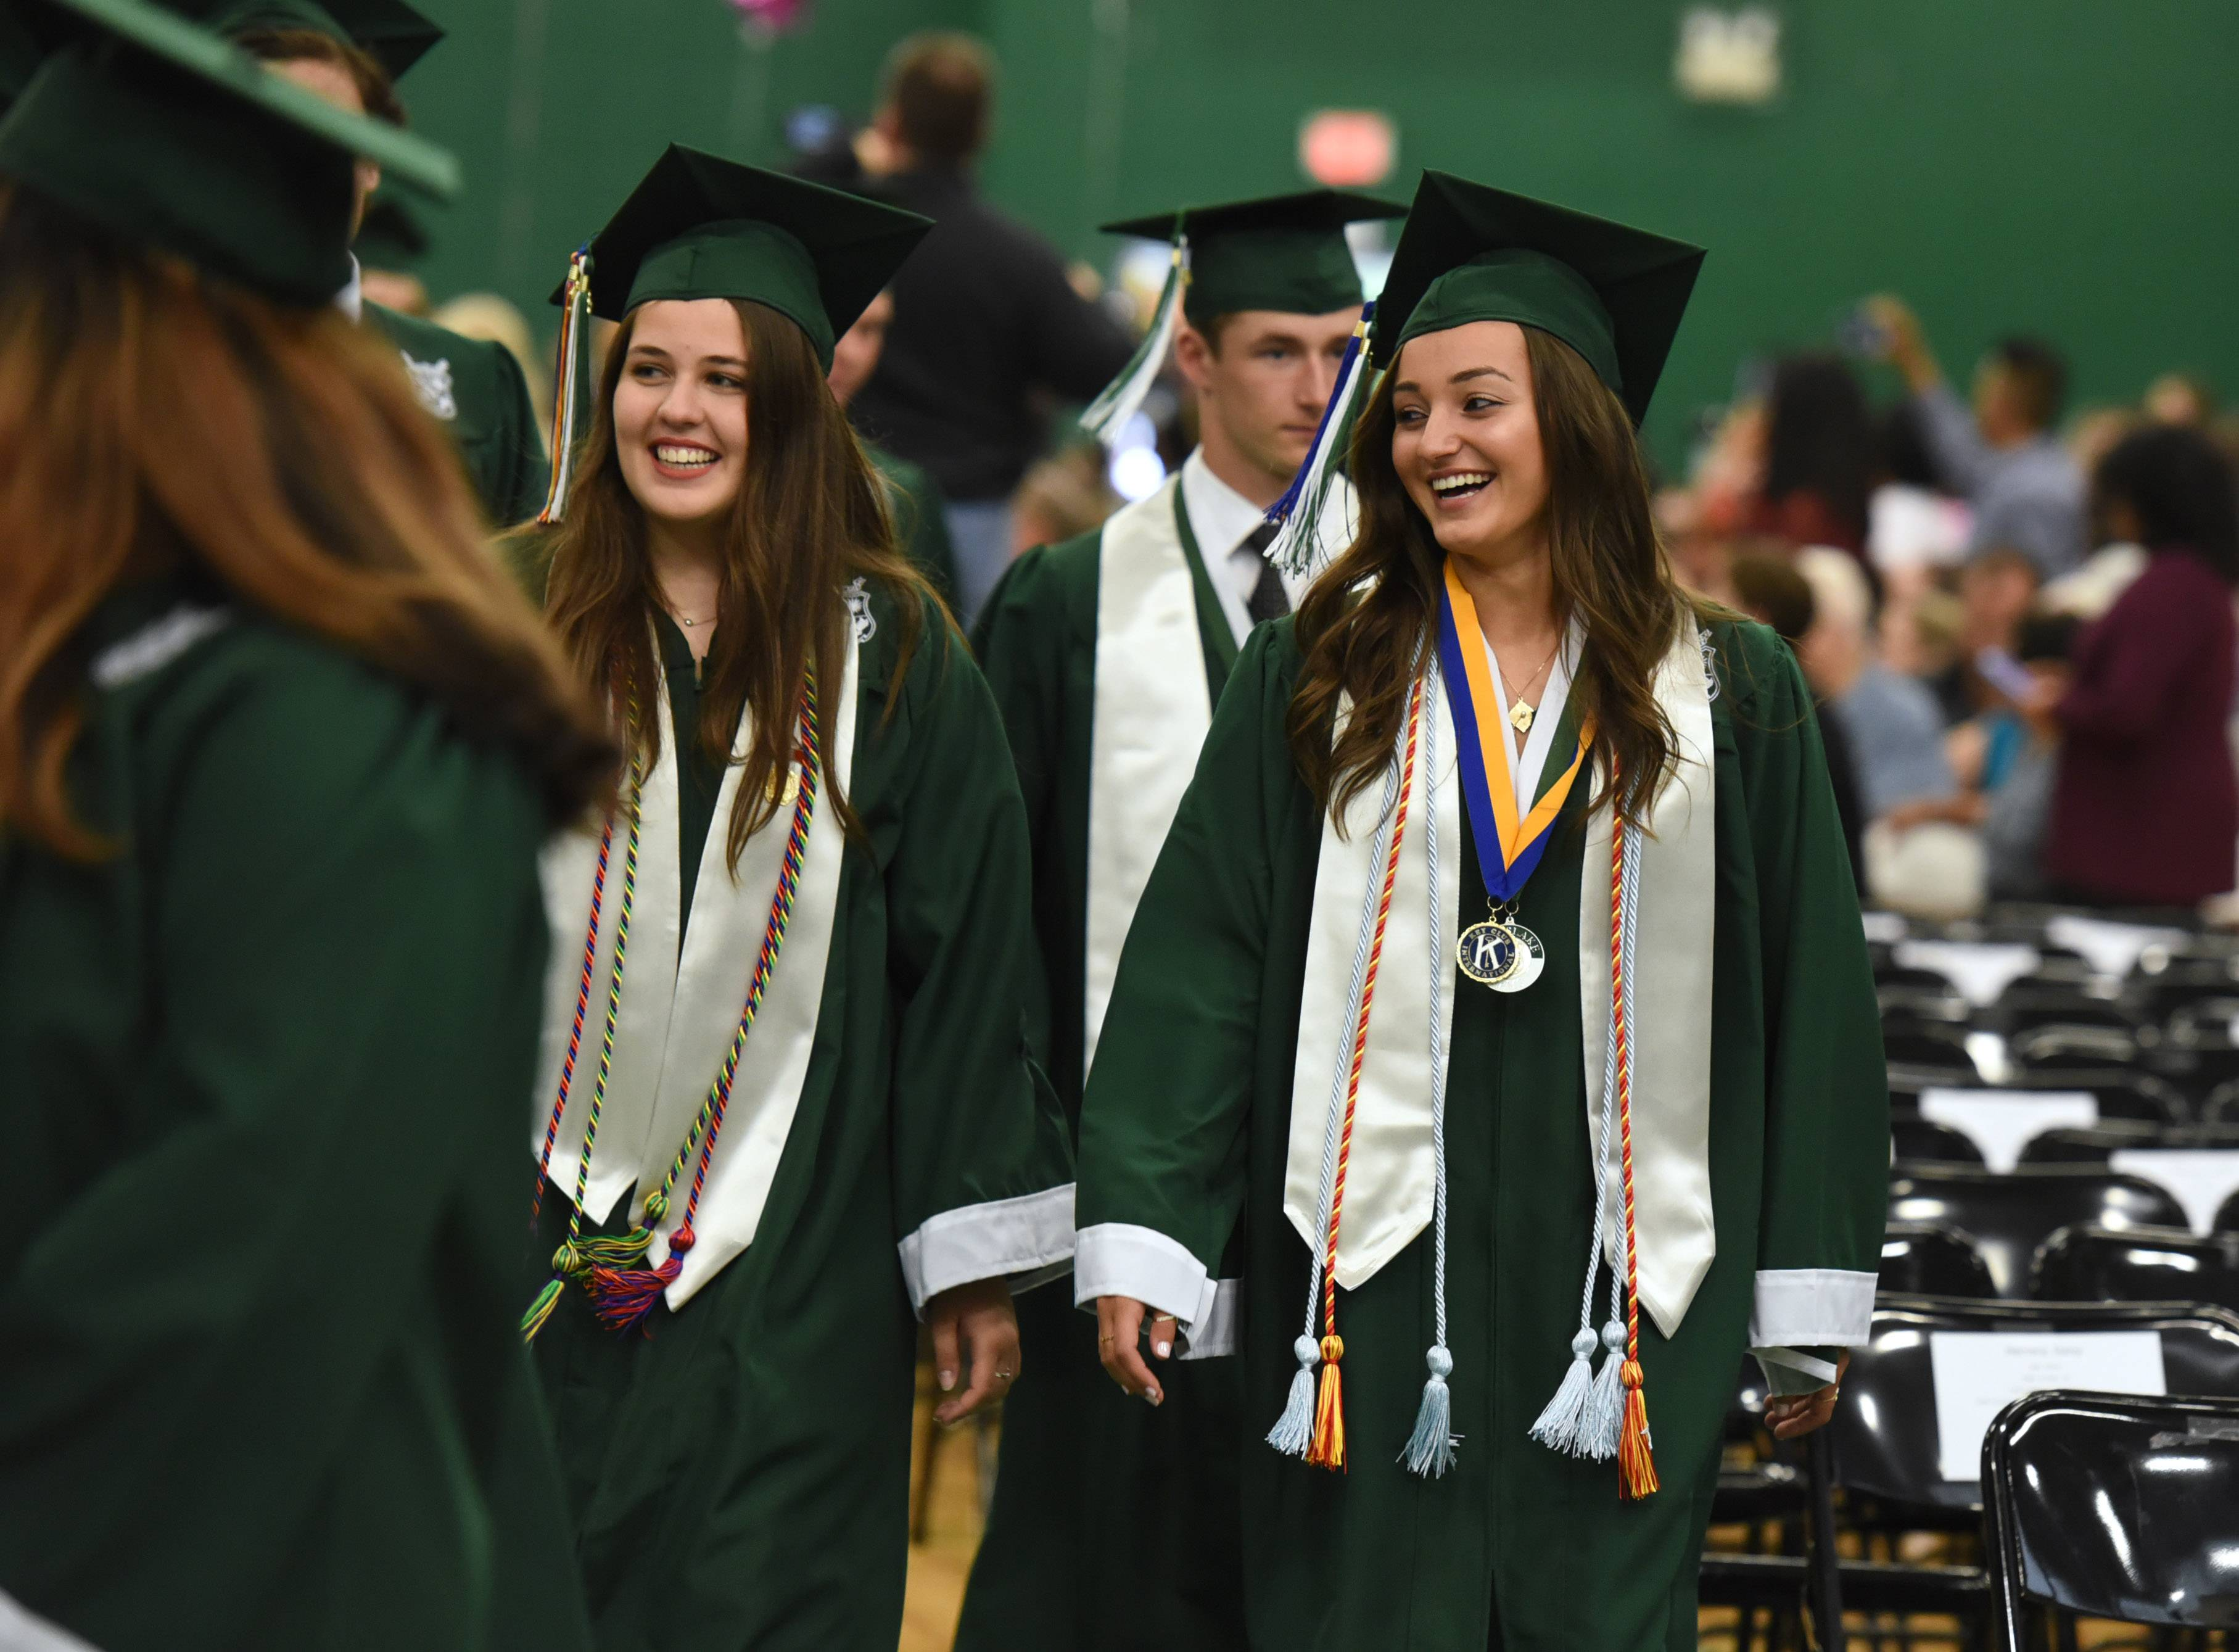 Images: Grayslake Central High School graduation